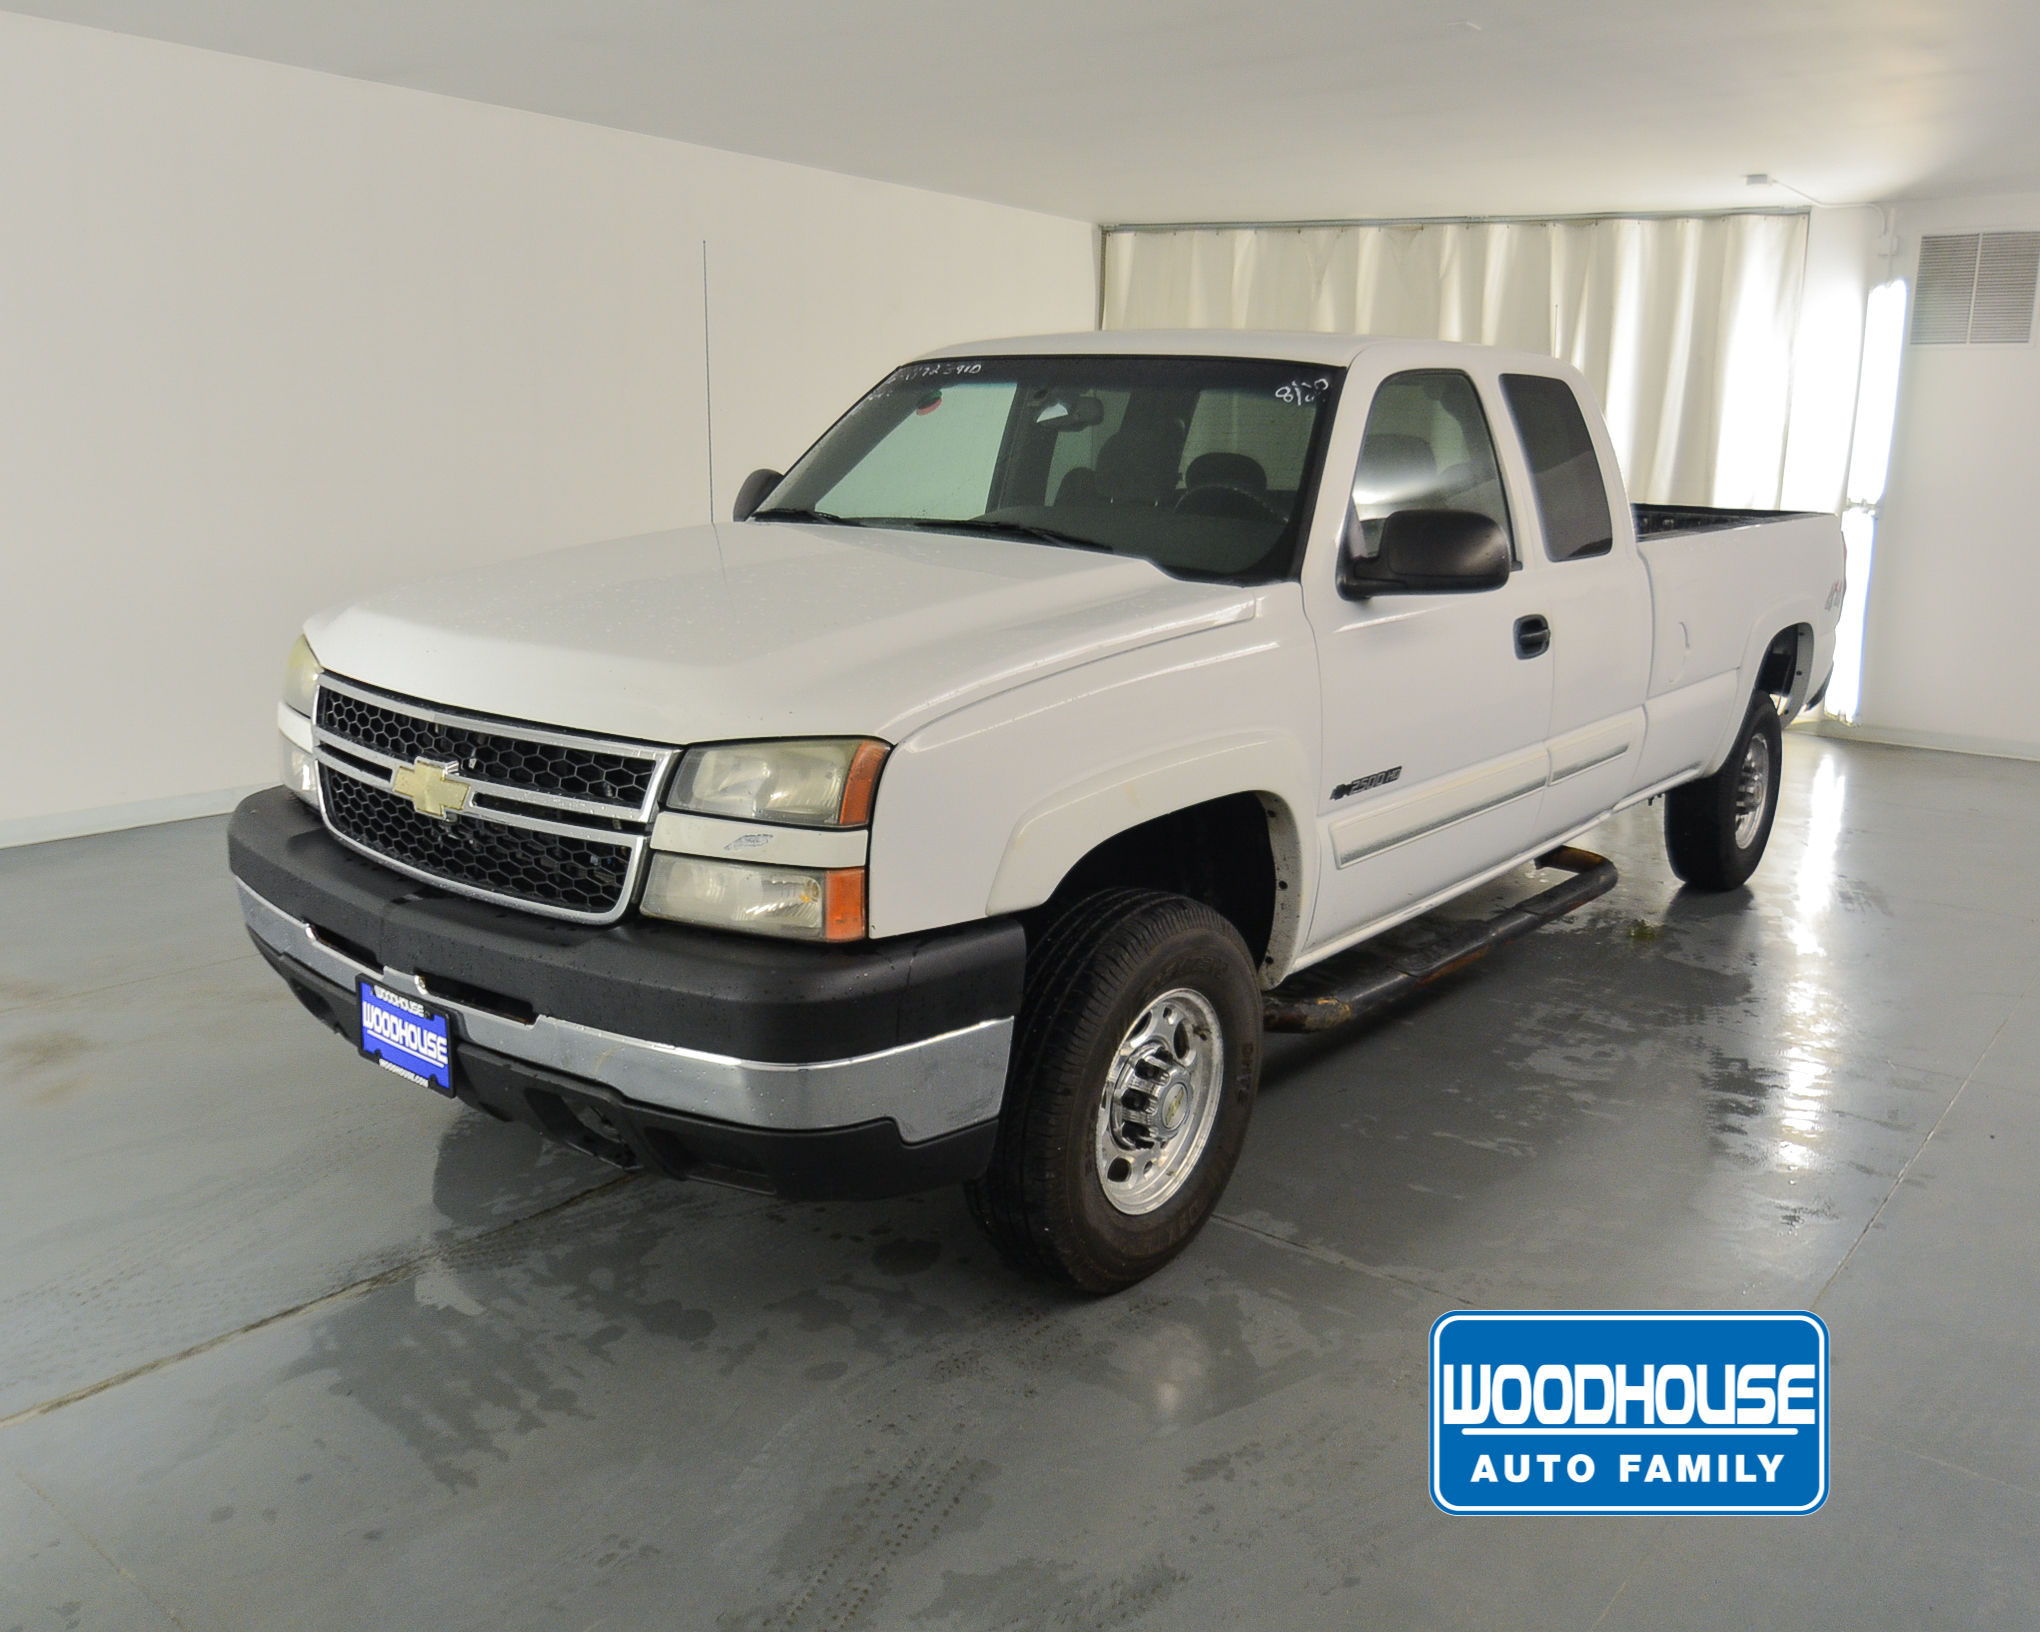 Used Chevy Silverado 2500 >> Woodhouse Used 2006 Chevrolet 2500 For Sale Chevy Buick Missouri